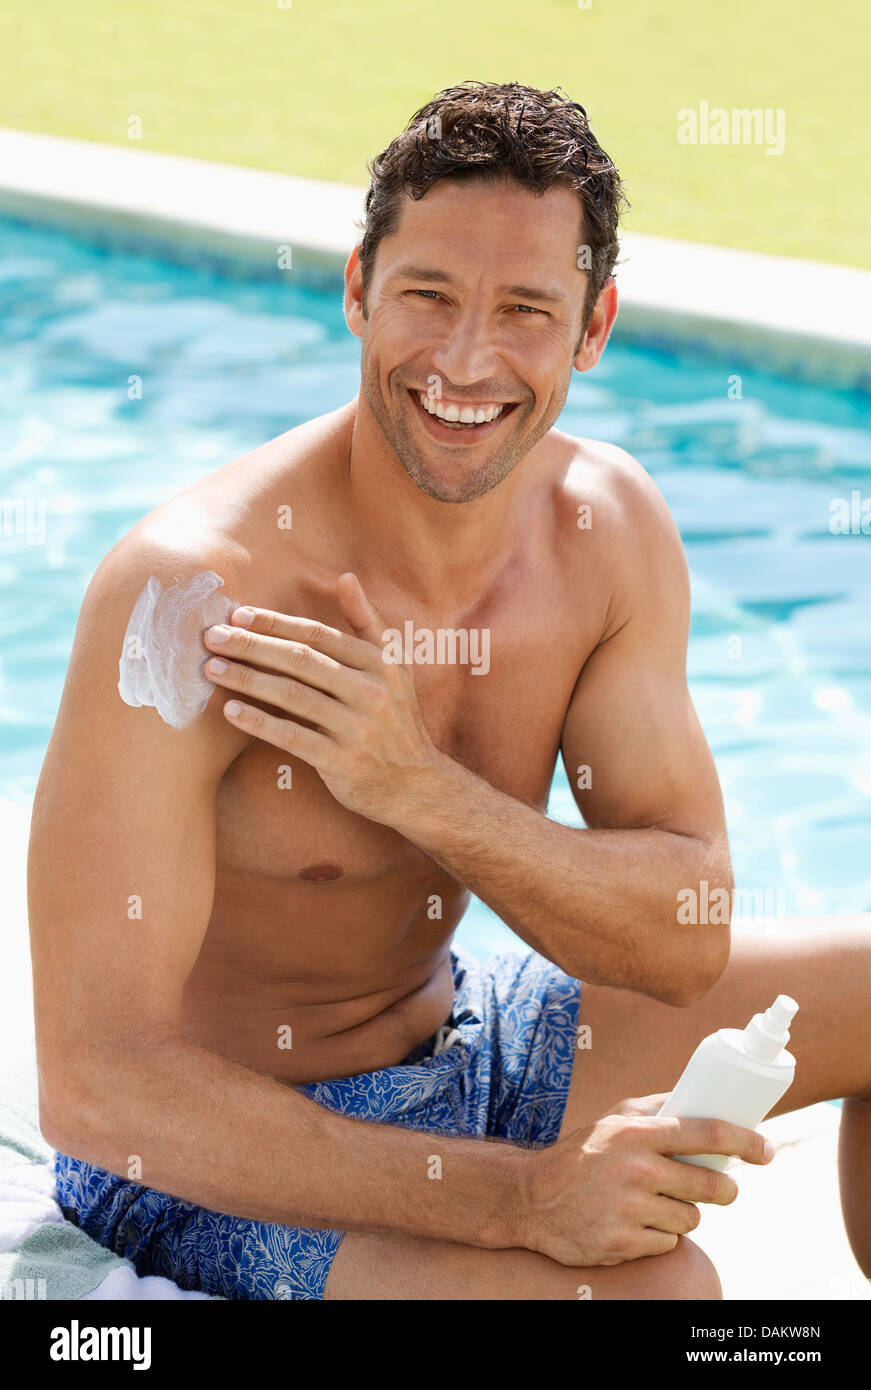 Man applying sunscreen by swimming pool - Stock Image